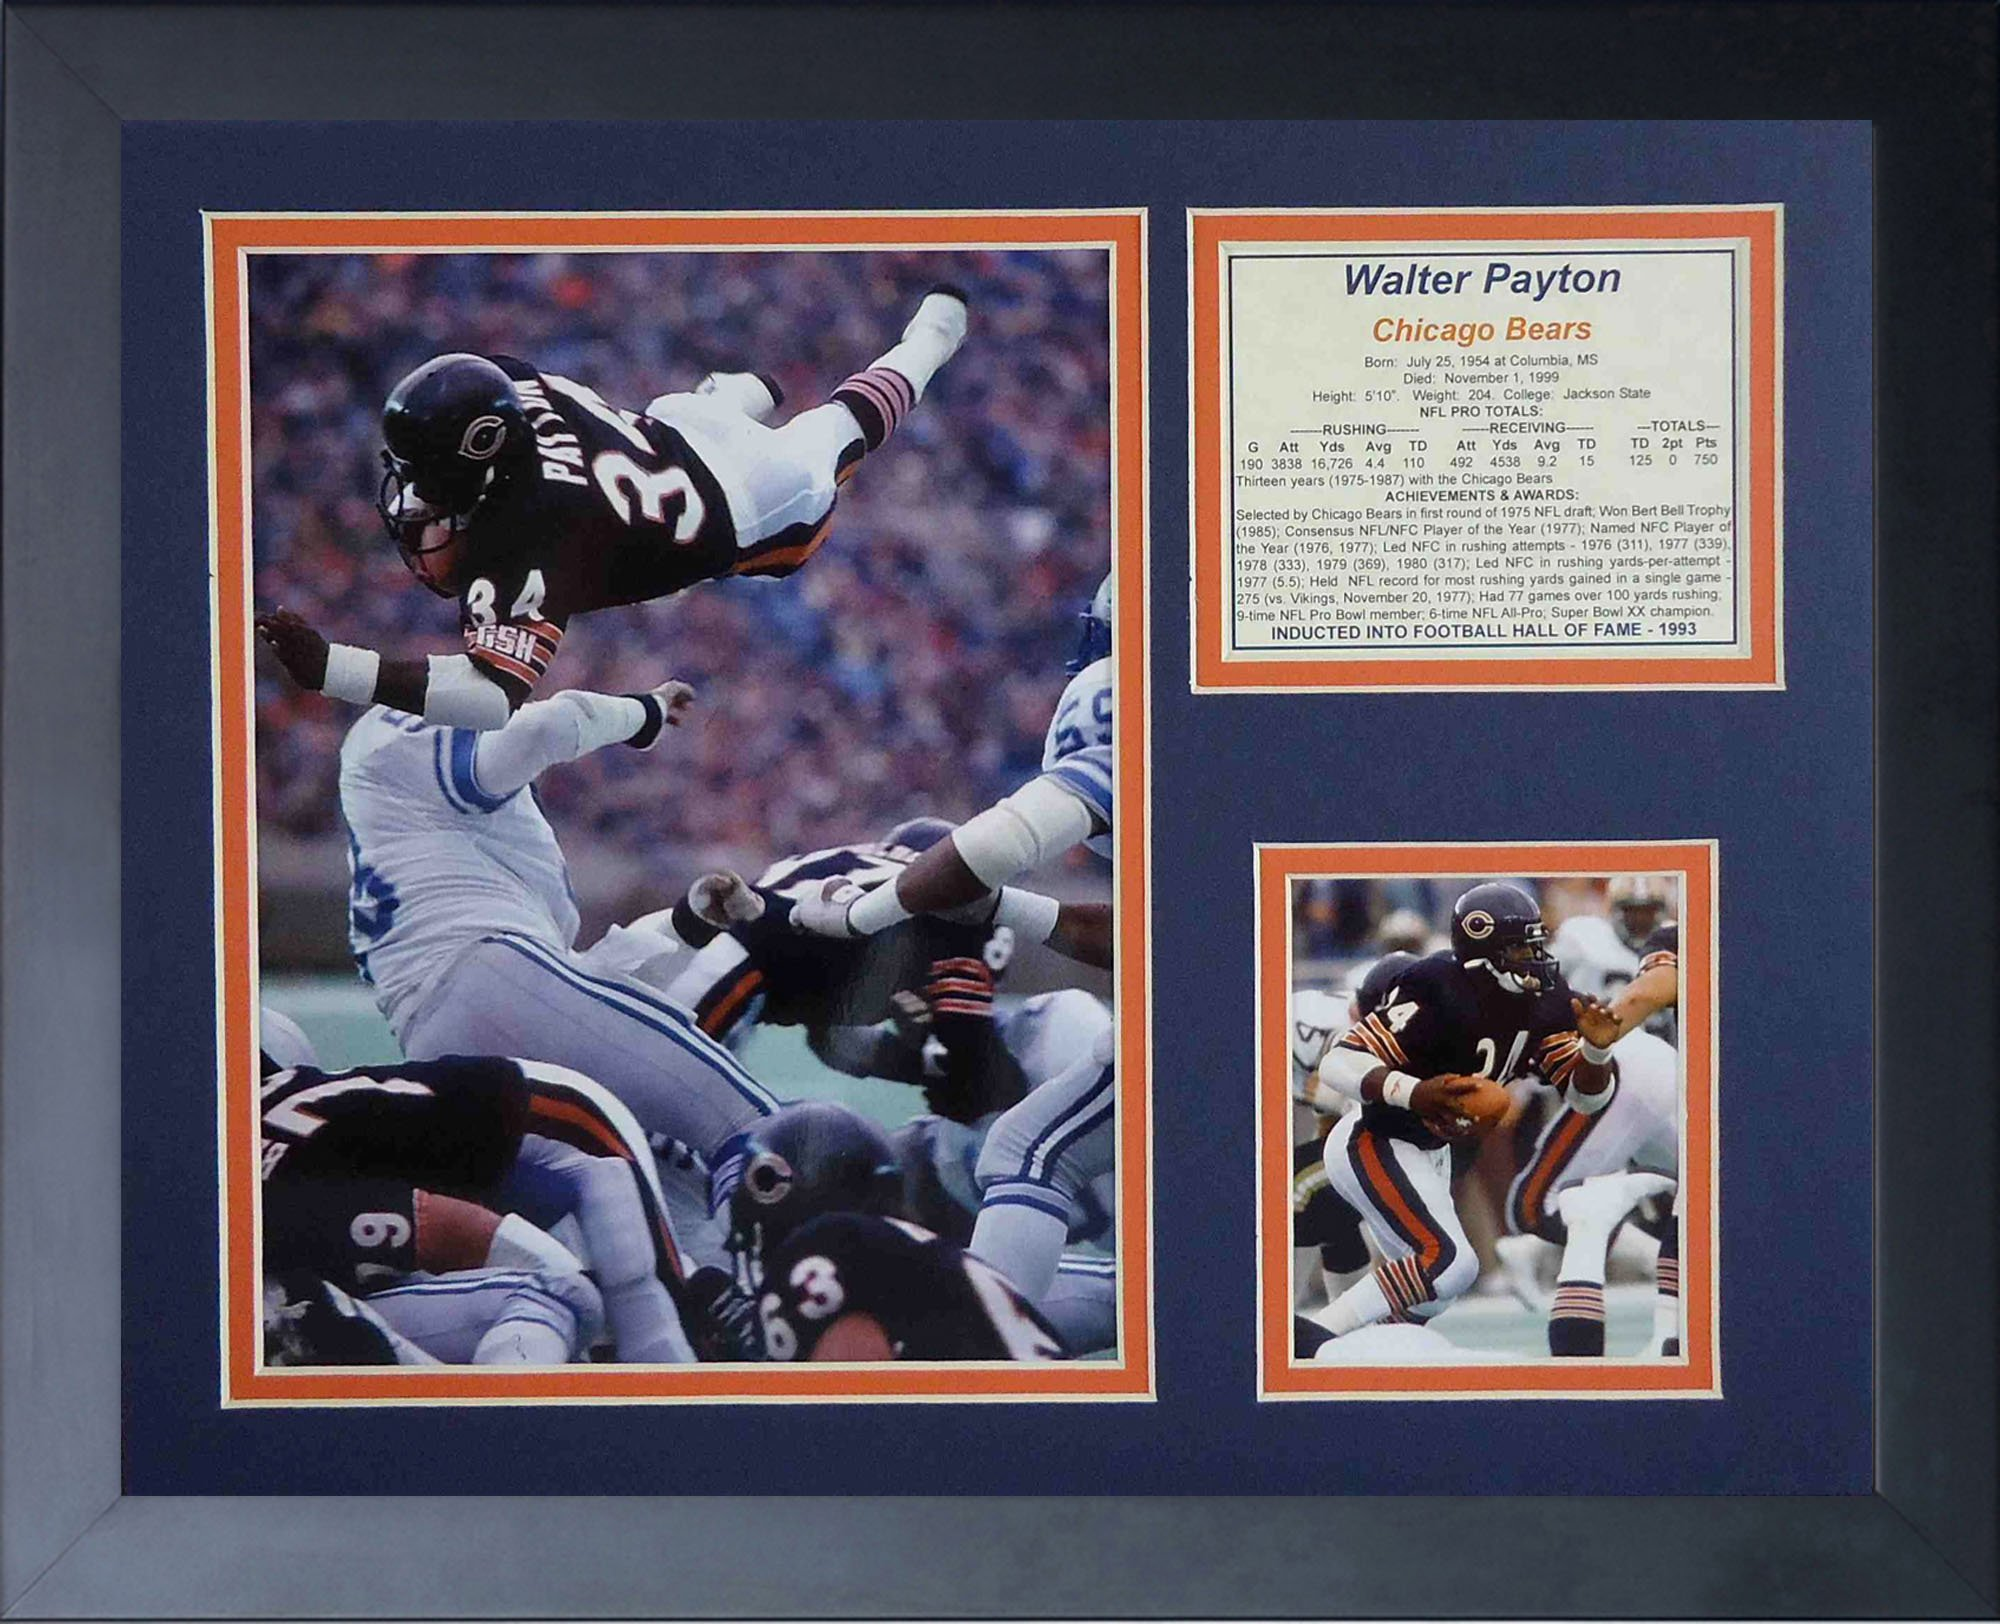 Legends Never Die Walter Payton Diving Framed Photo Collage, 11x14-Inch by Legends Never Die